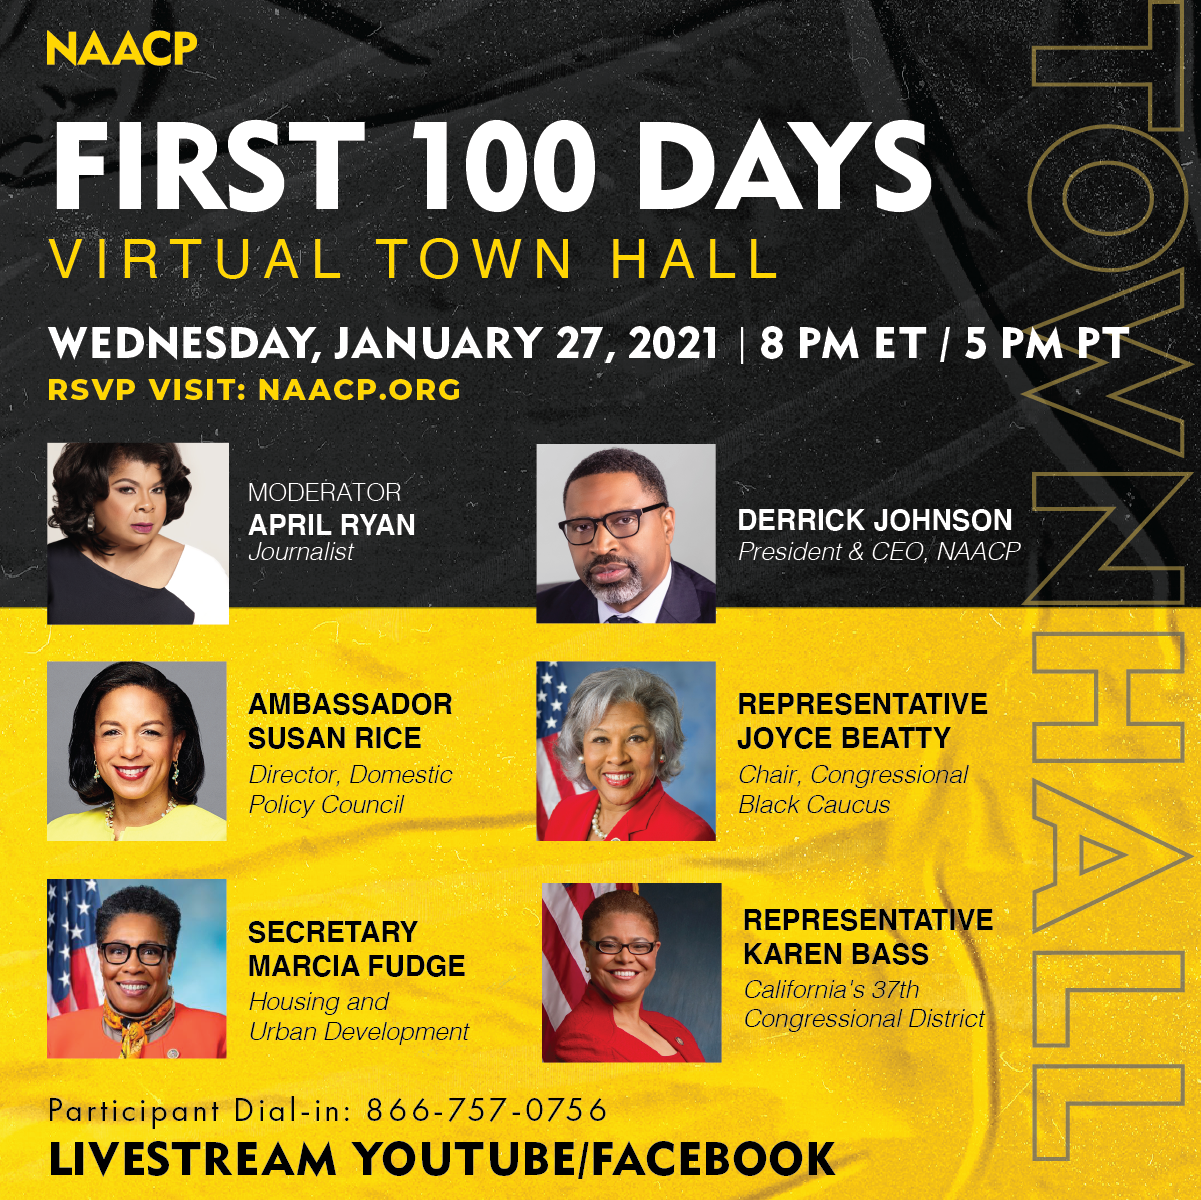 First 100 Days virtual town hall @ Online